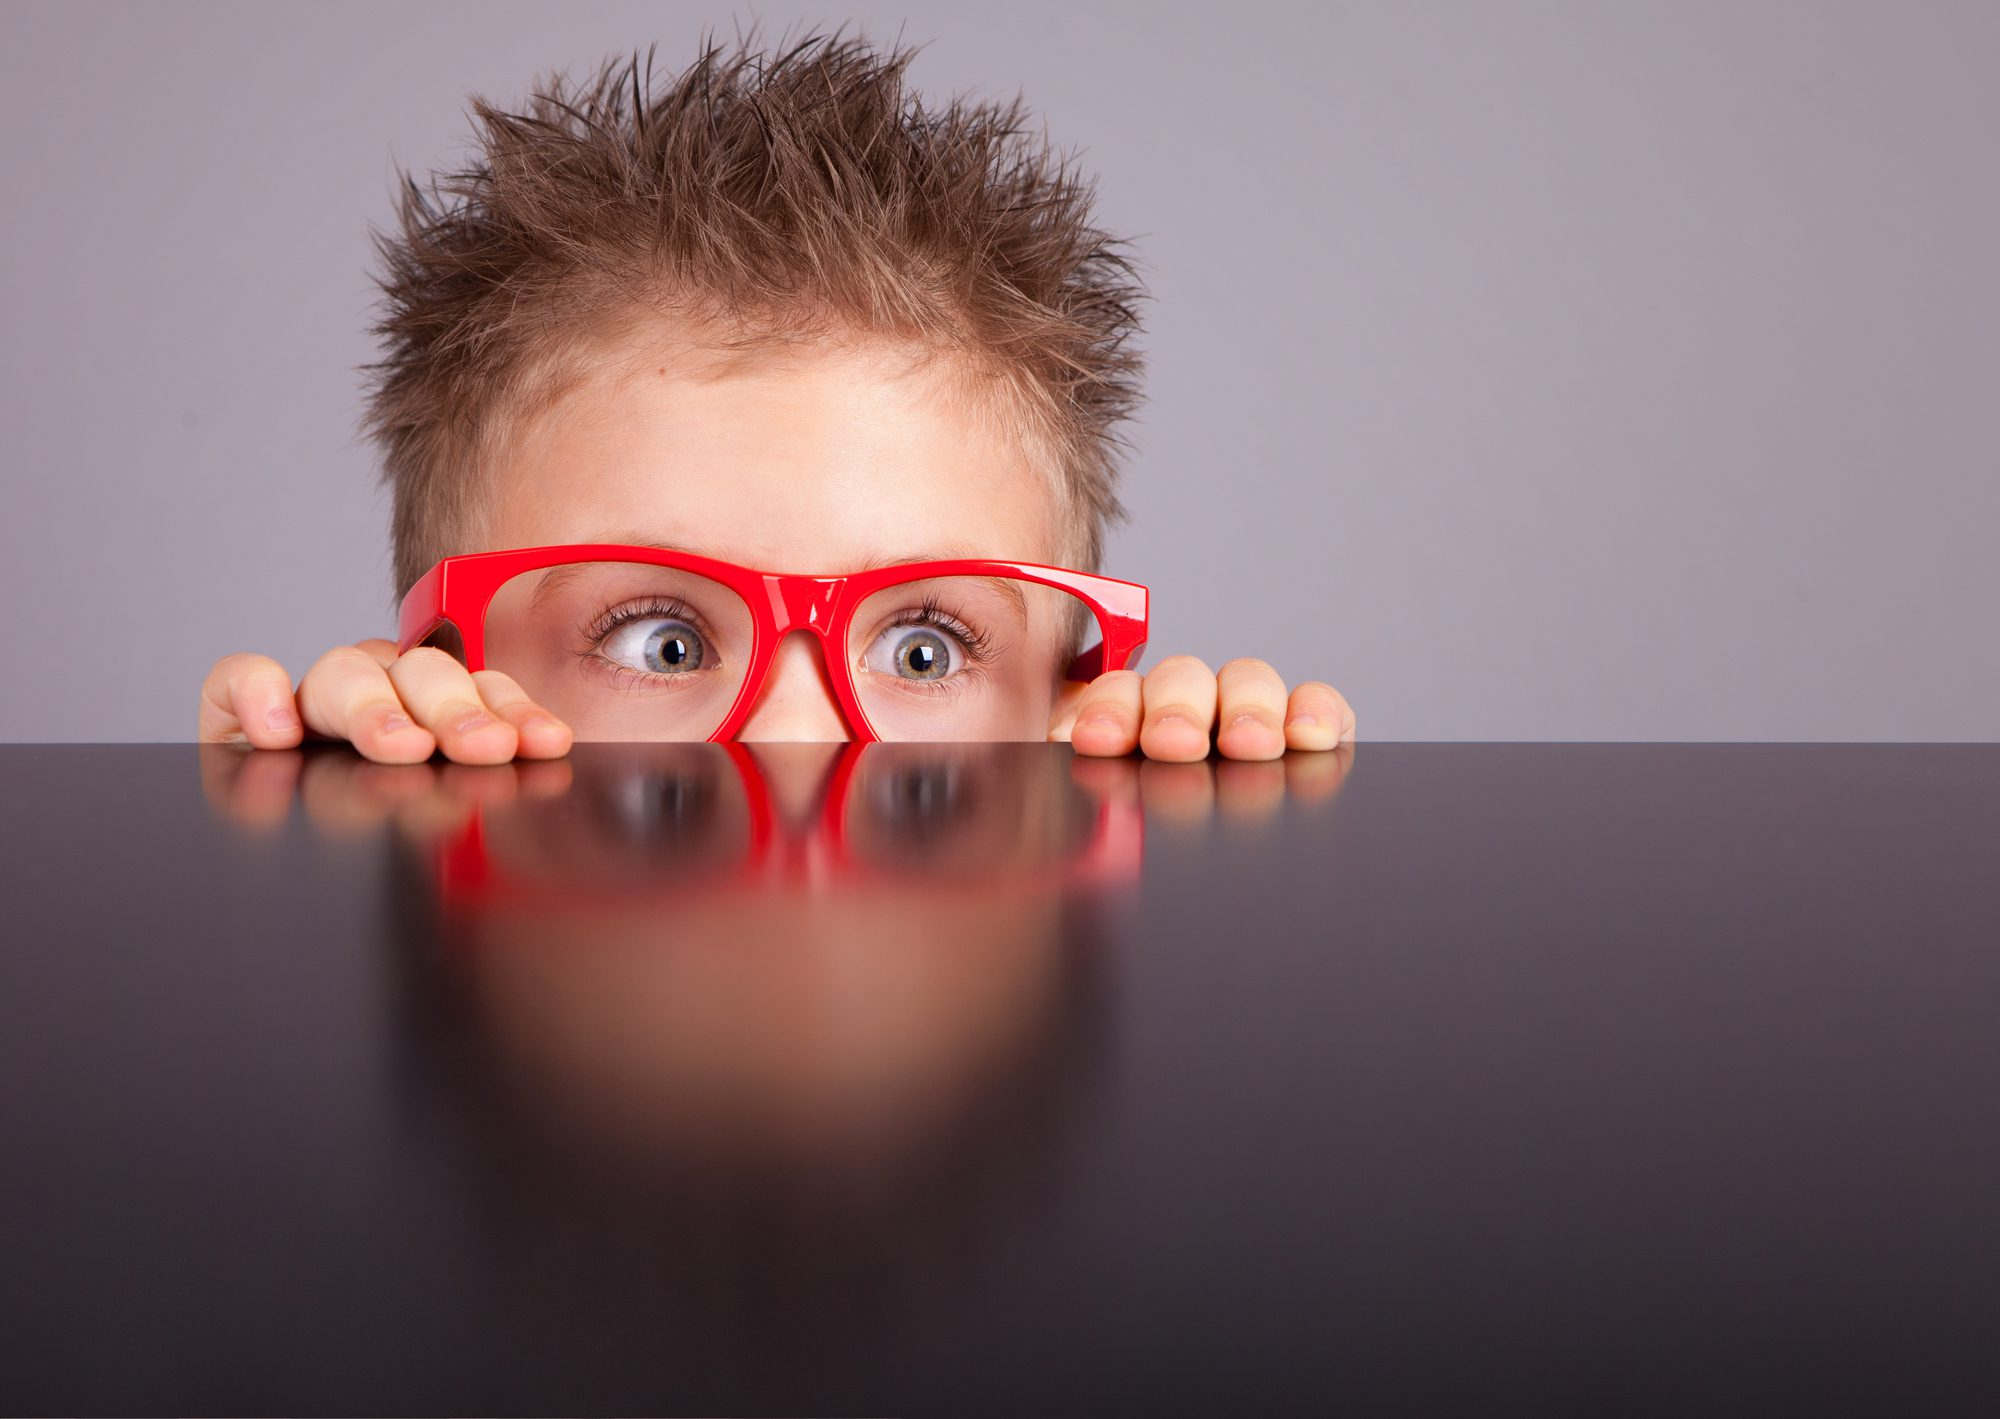 Anxious young boy hiding behind table with with red glasses